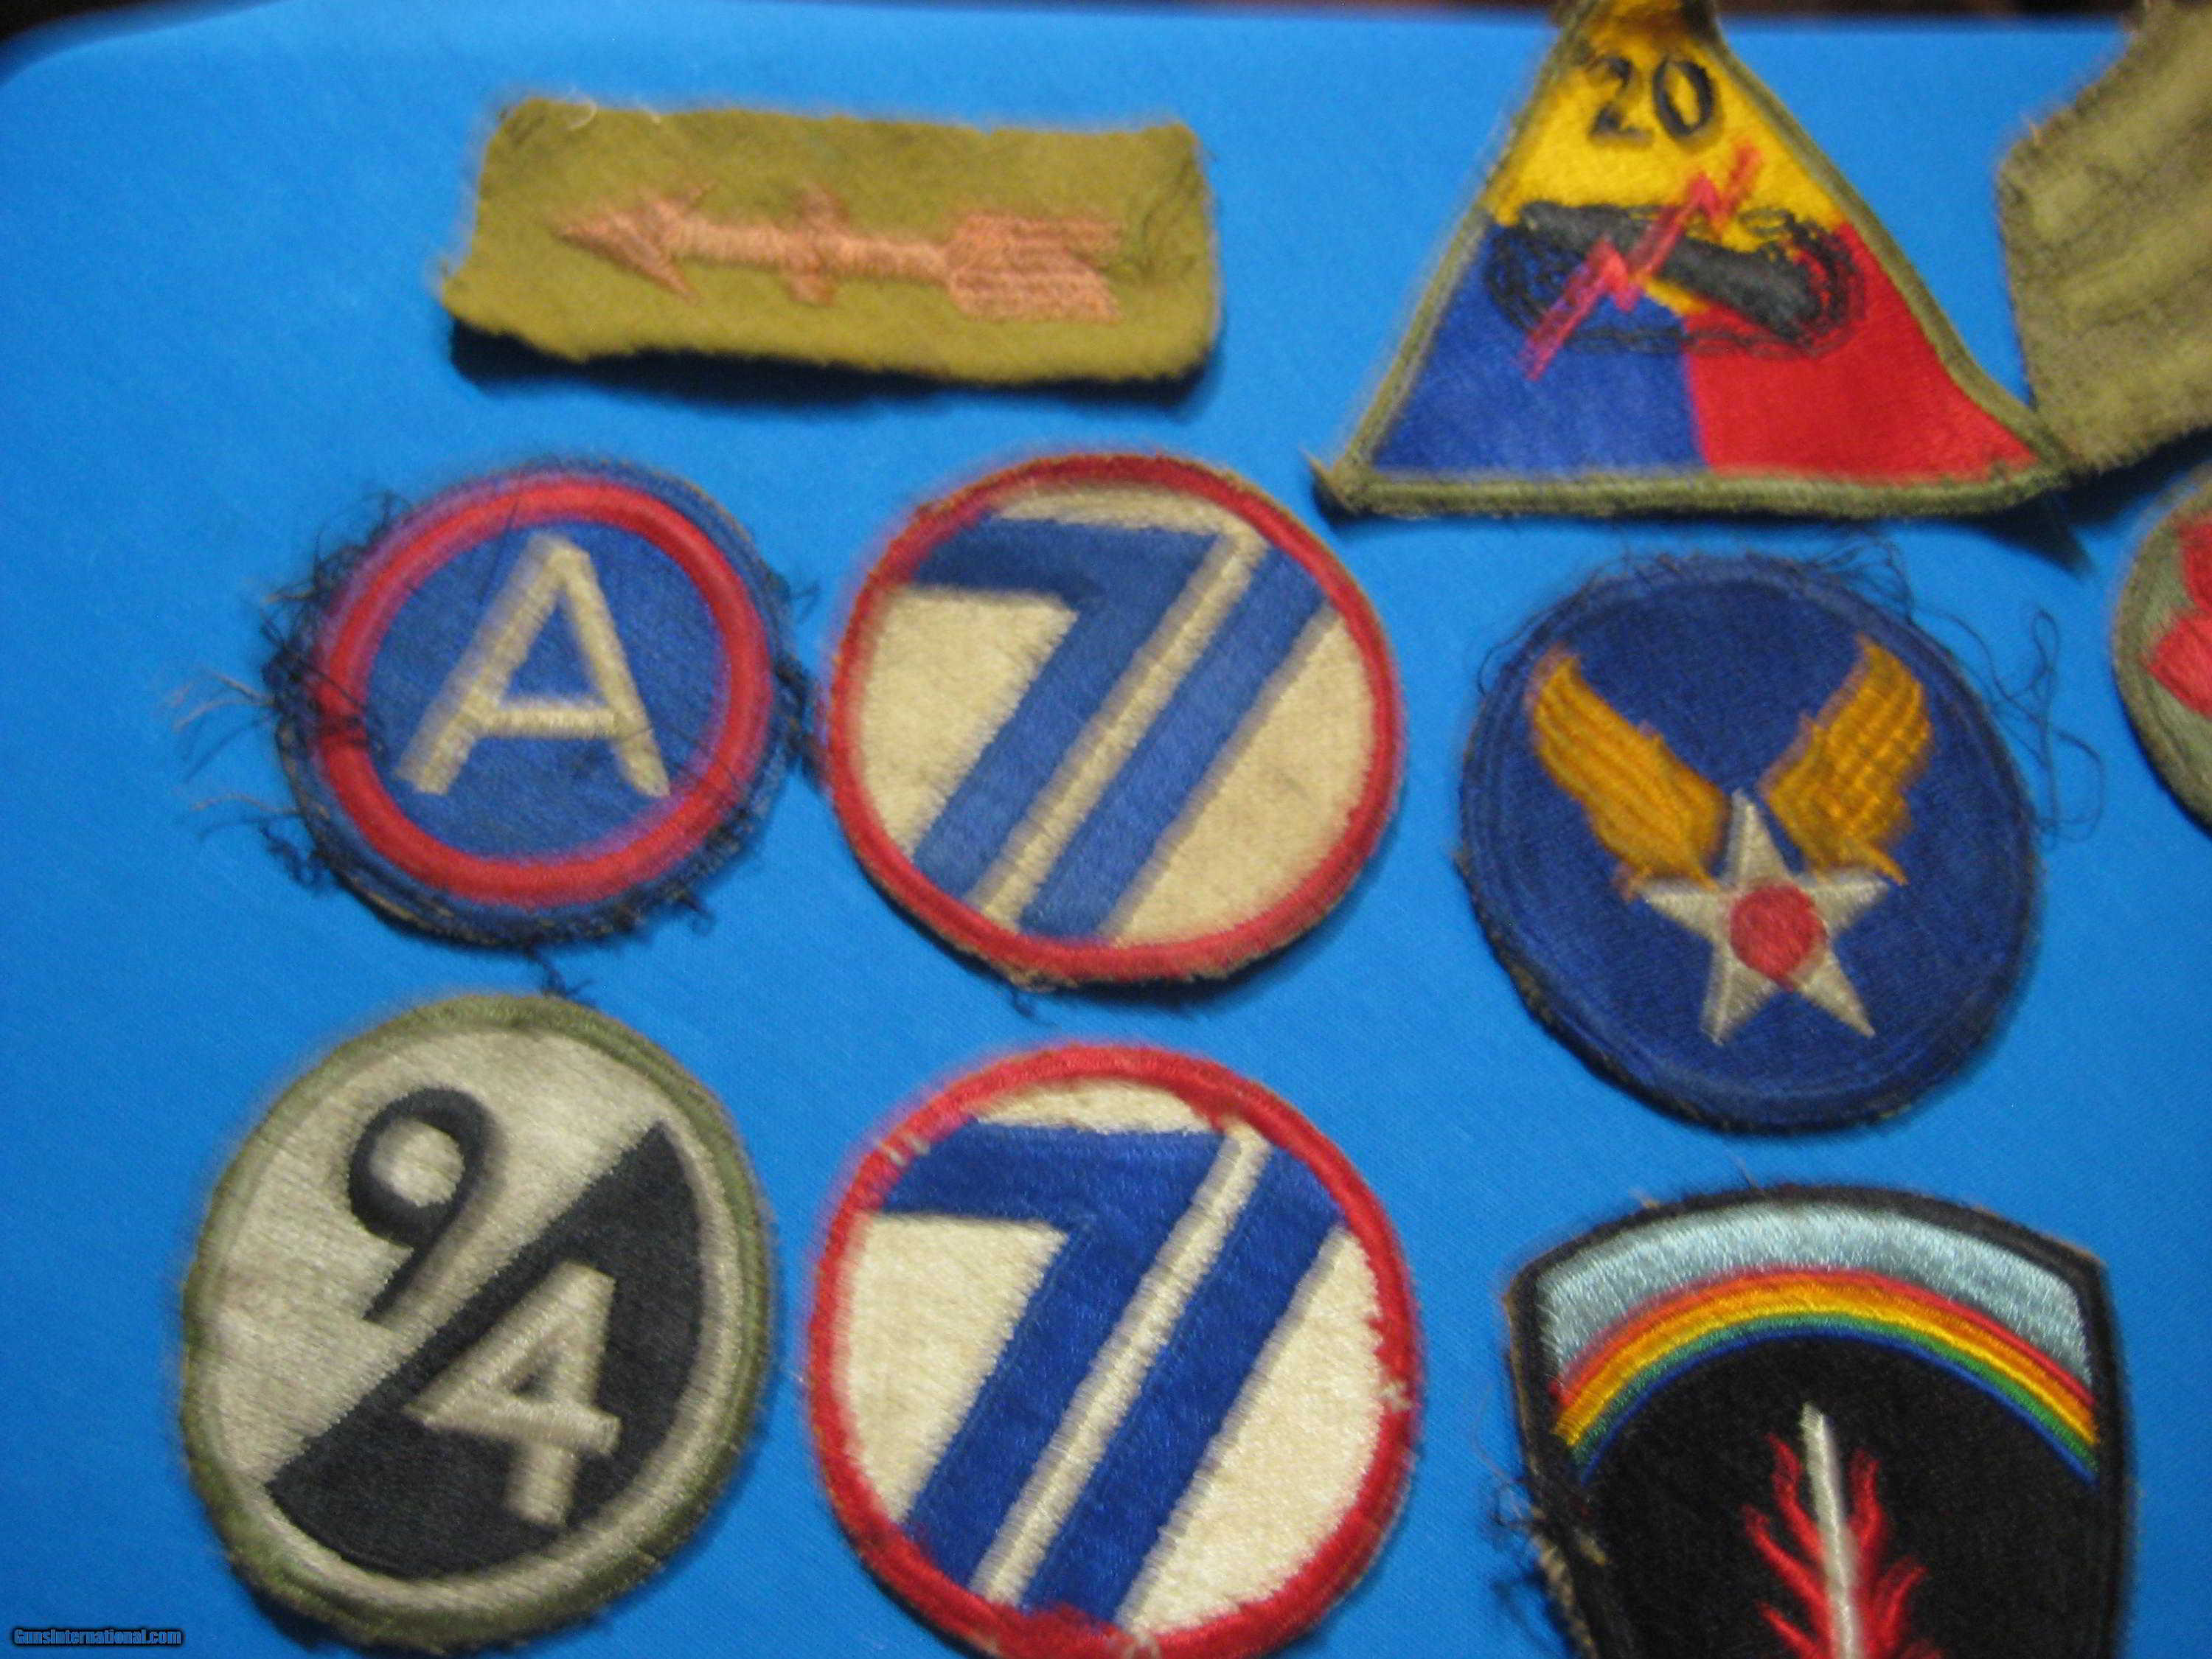 U S  WW2 Army Division Patches for sale